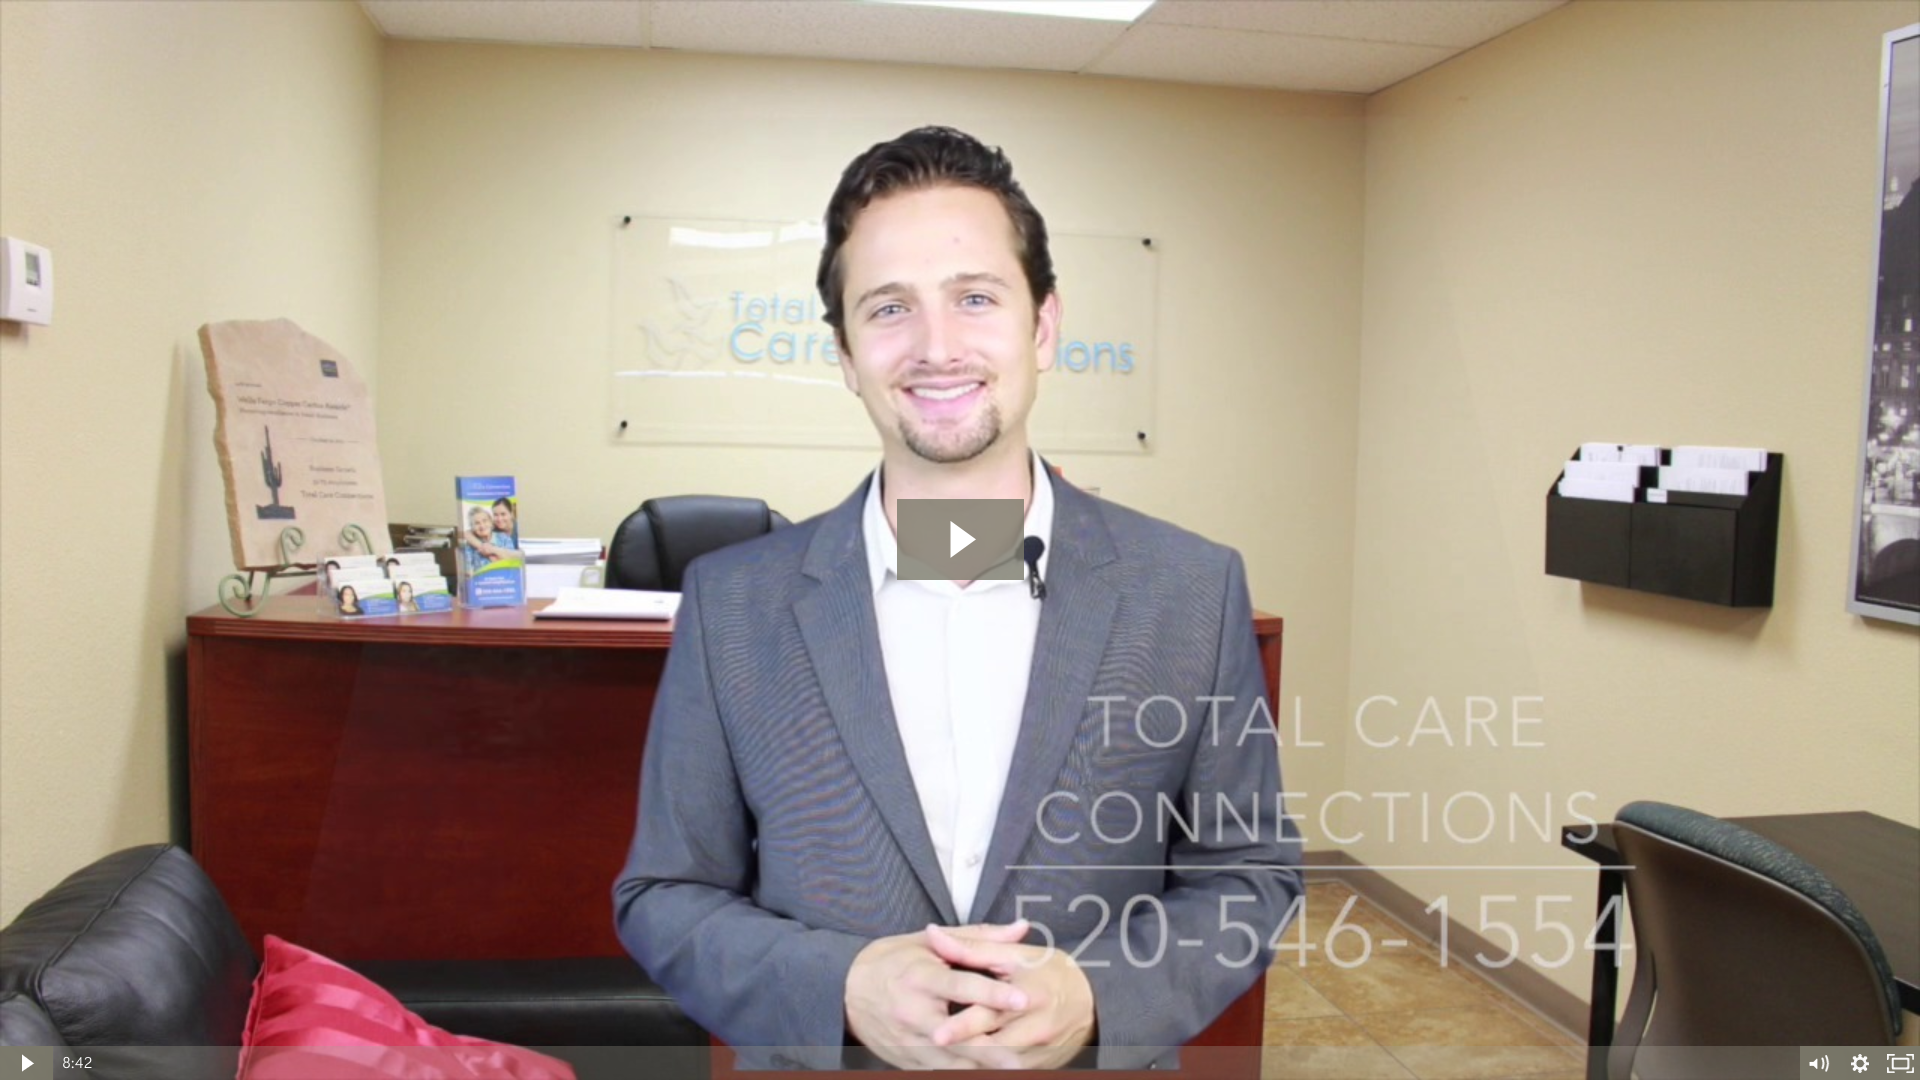 Video: 3 Things You Must Know When Selecting a Home Care Provider